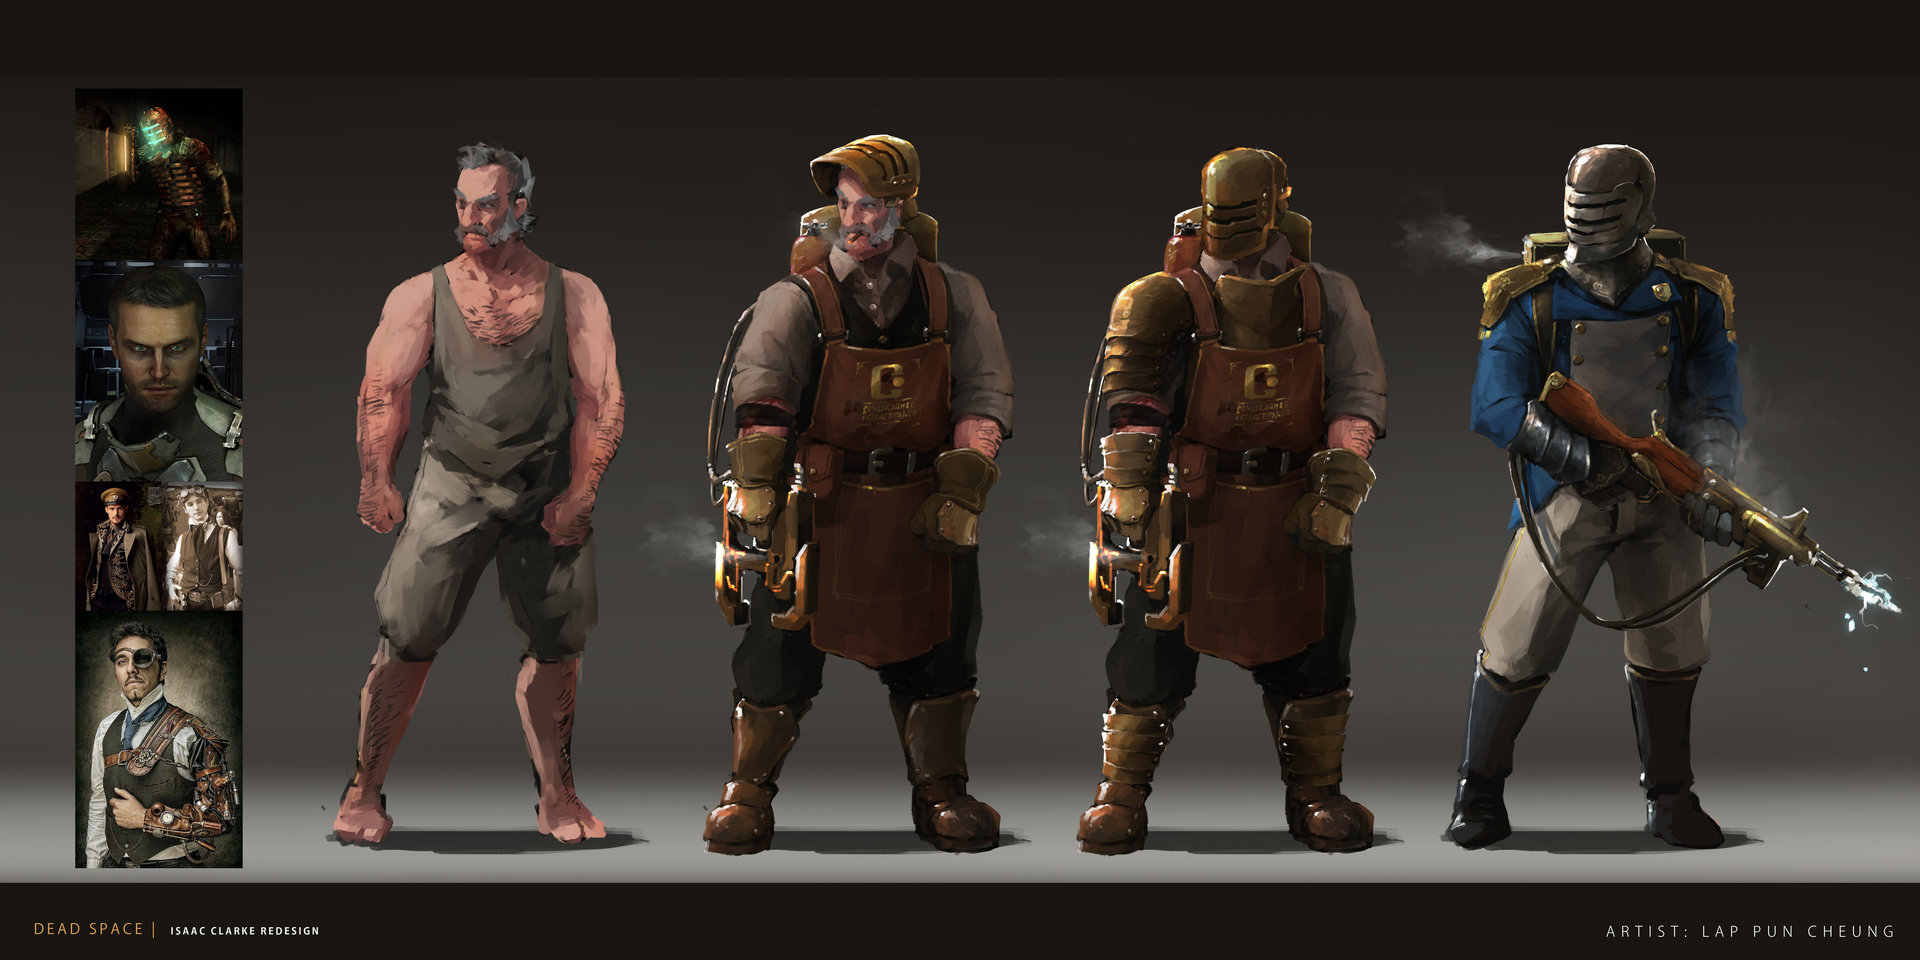 Lap pun cheung dead space isaac clarke redesign 01